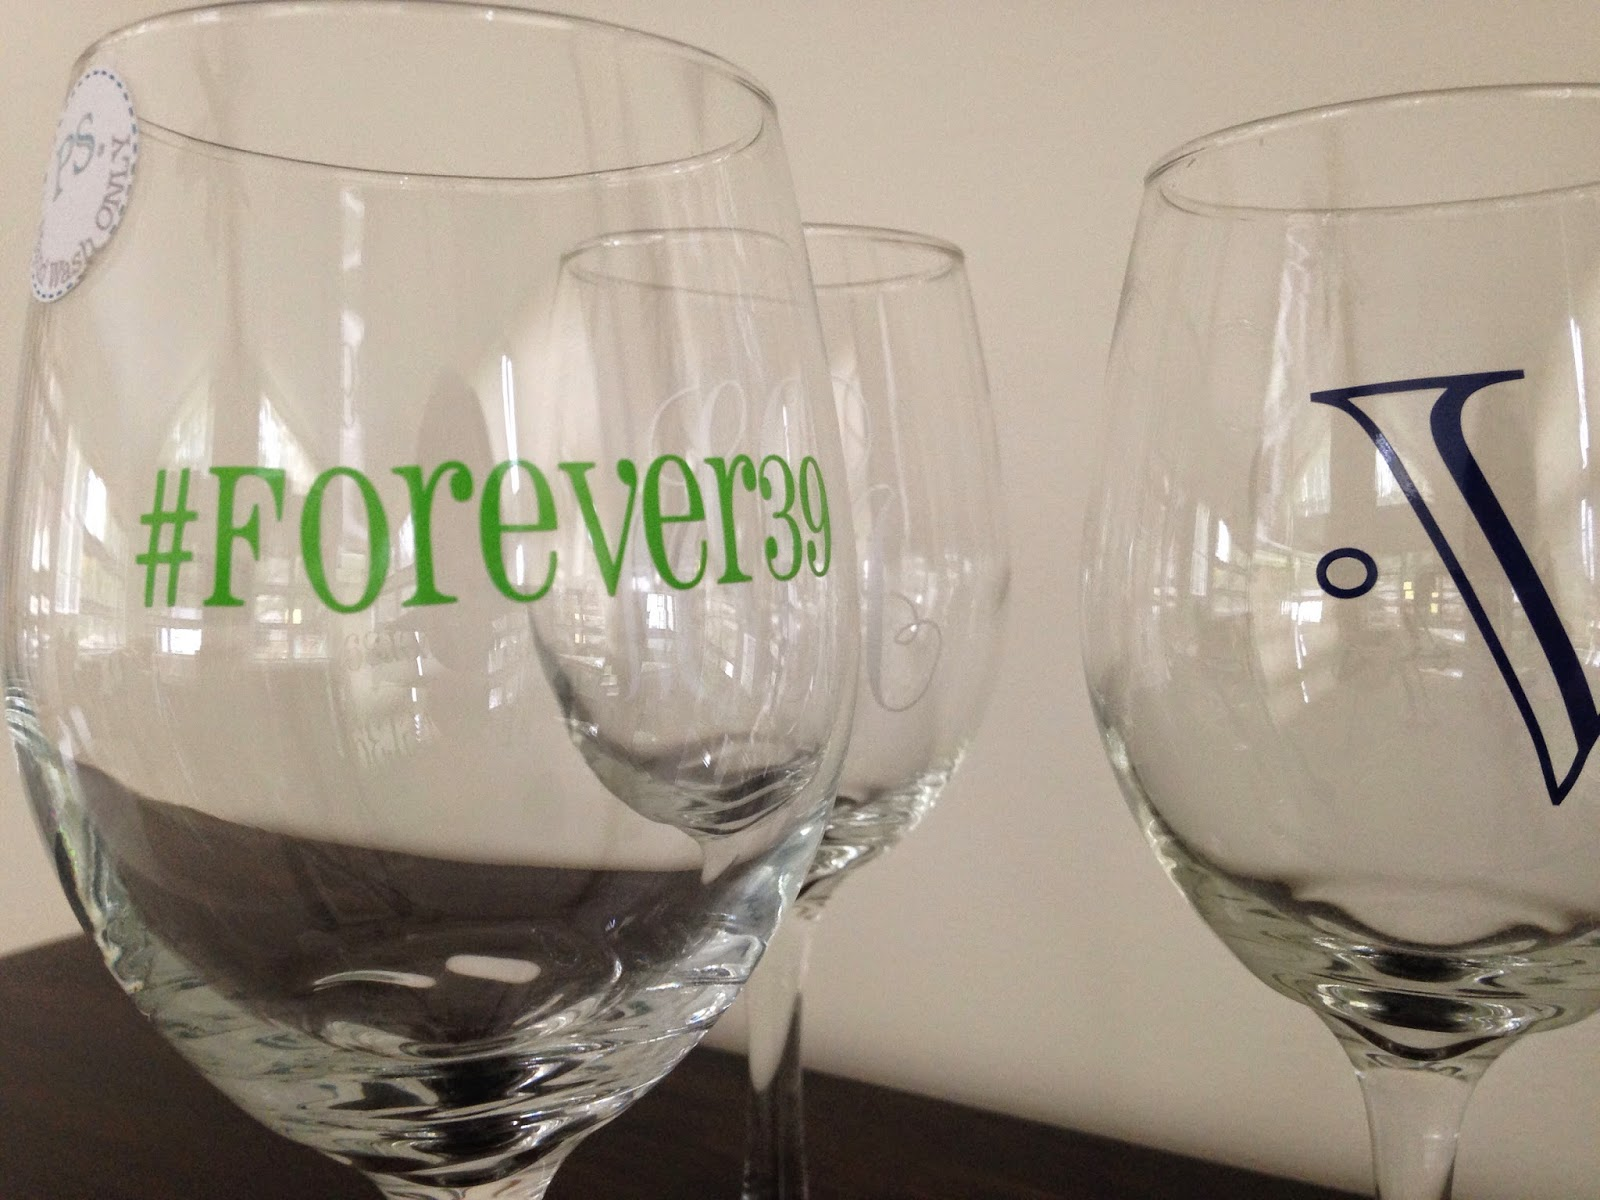 Vinyl wine glass, vinyl decals for wine glasses, vinyl lettering for wine glasses, how to put vinyl on wine glass, vinyl on wine glass diy